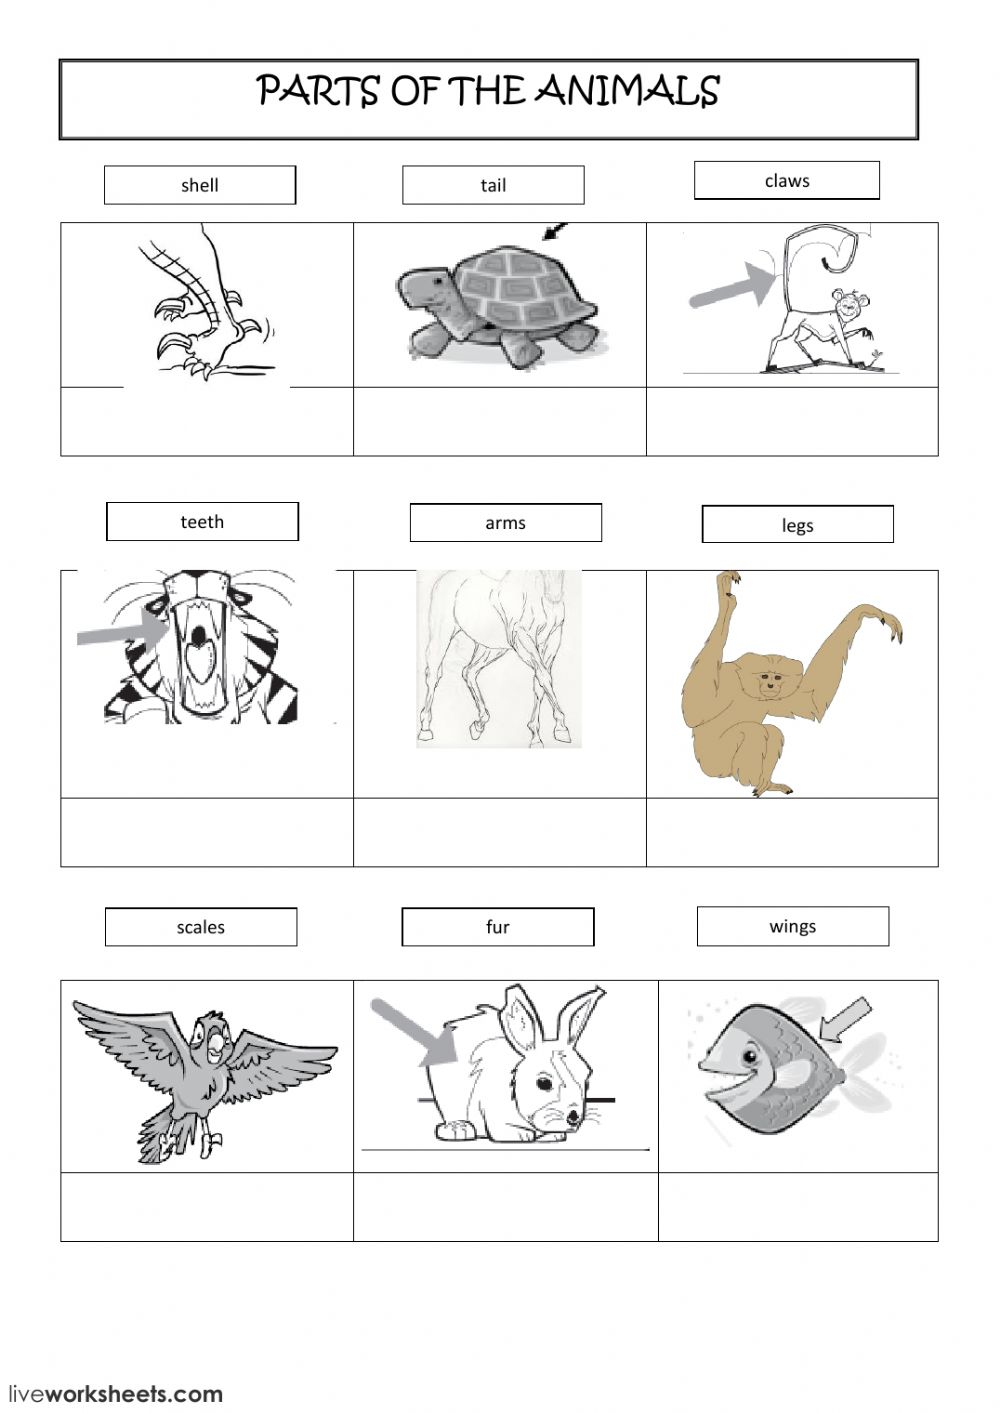 hight resolution of Parts of the animals worksheet